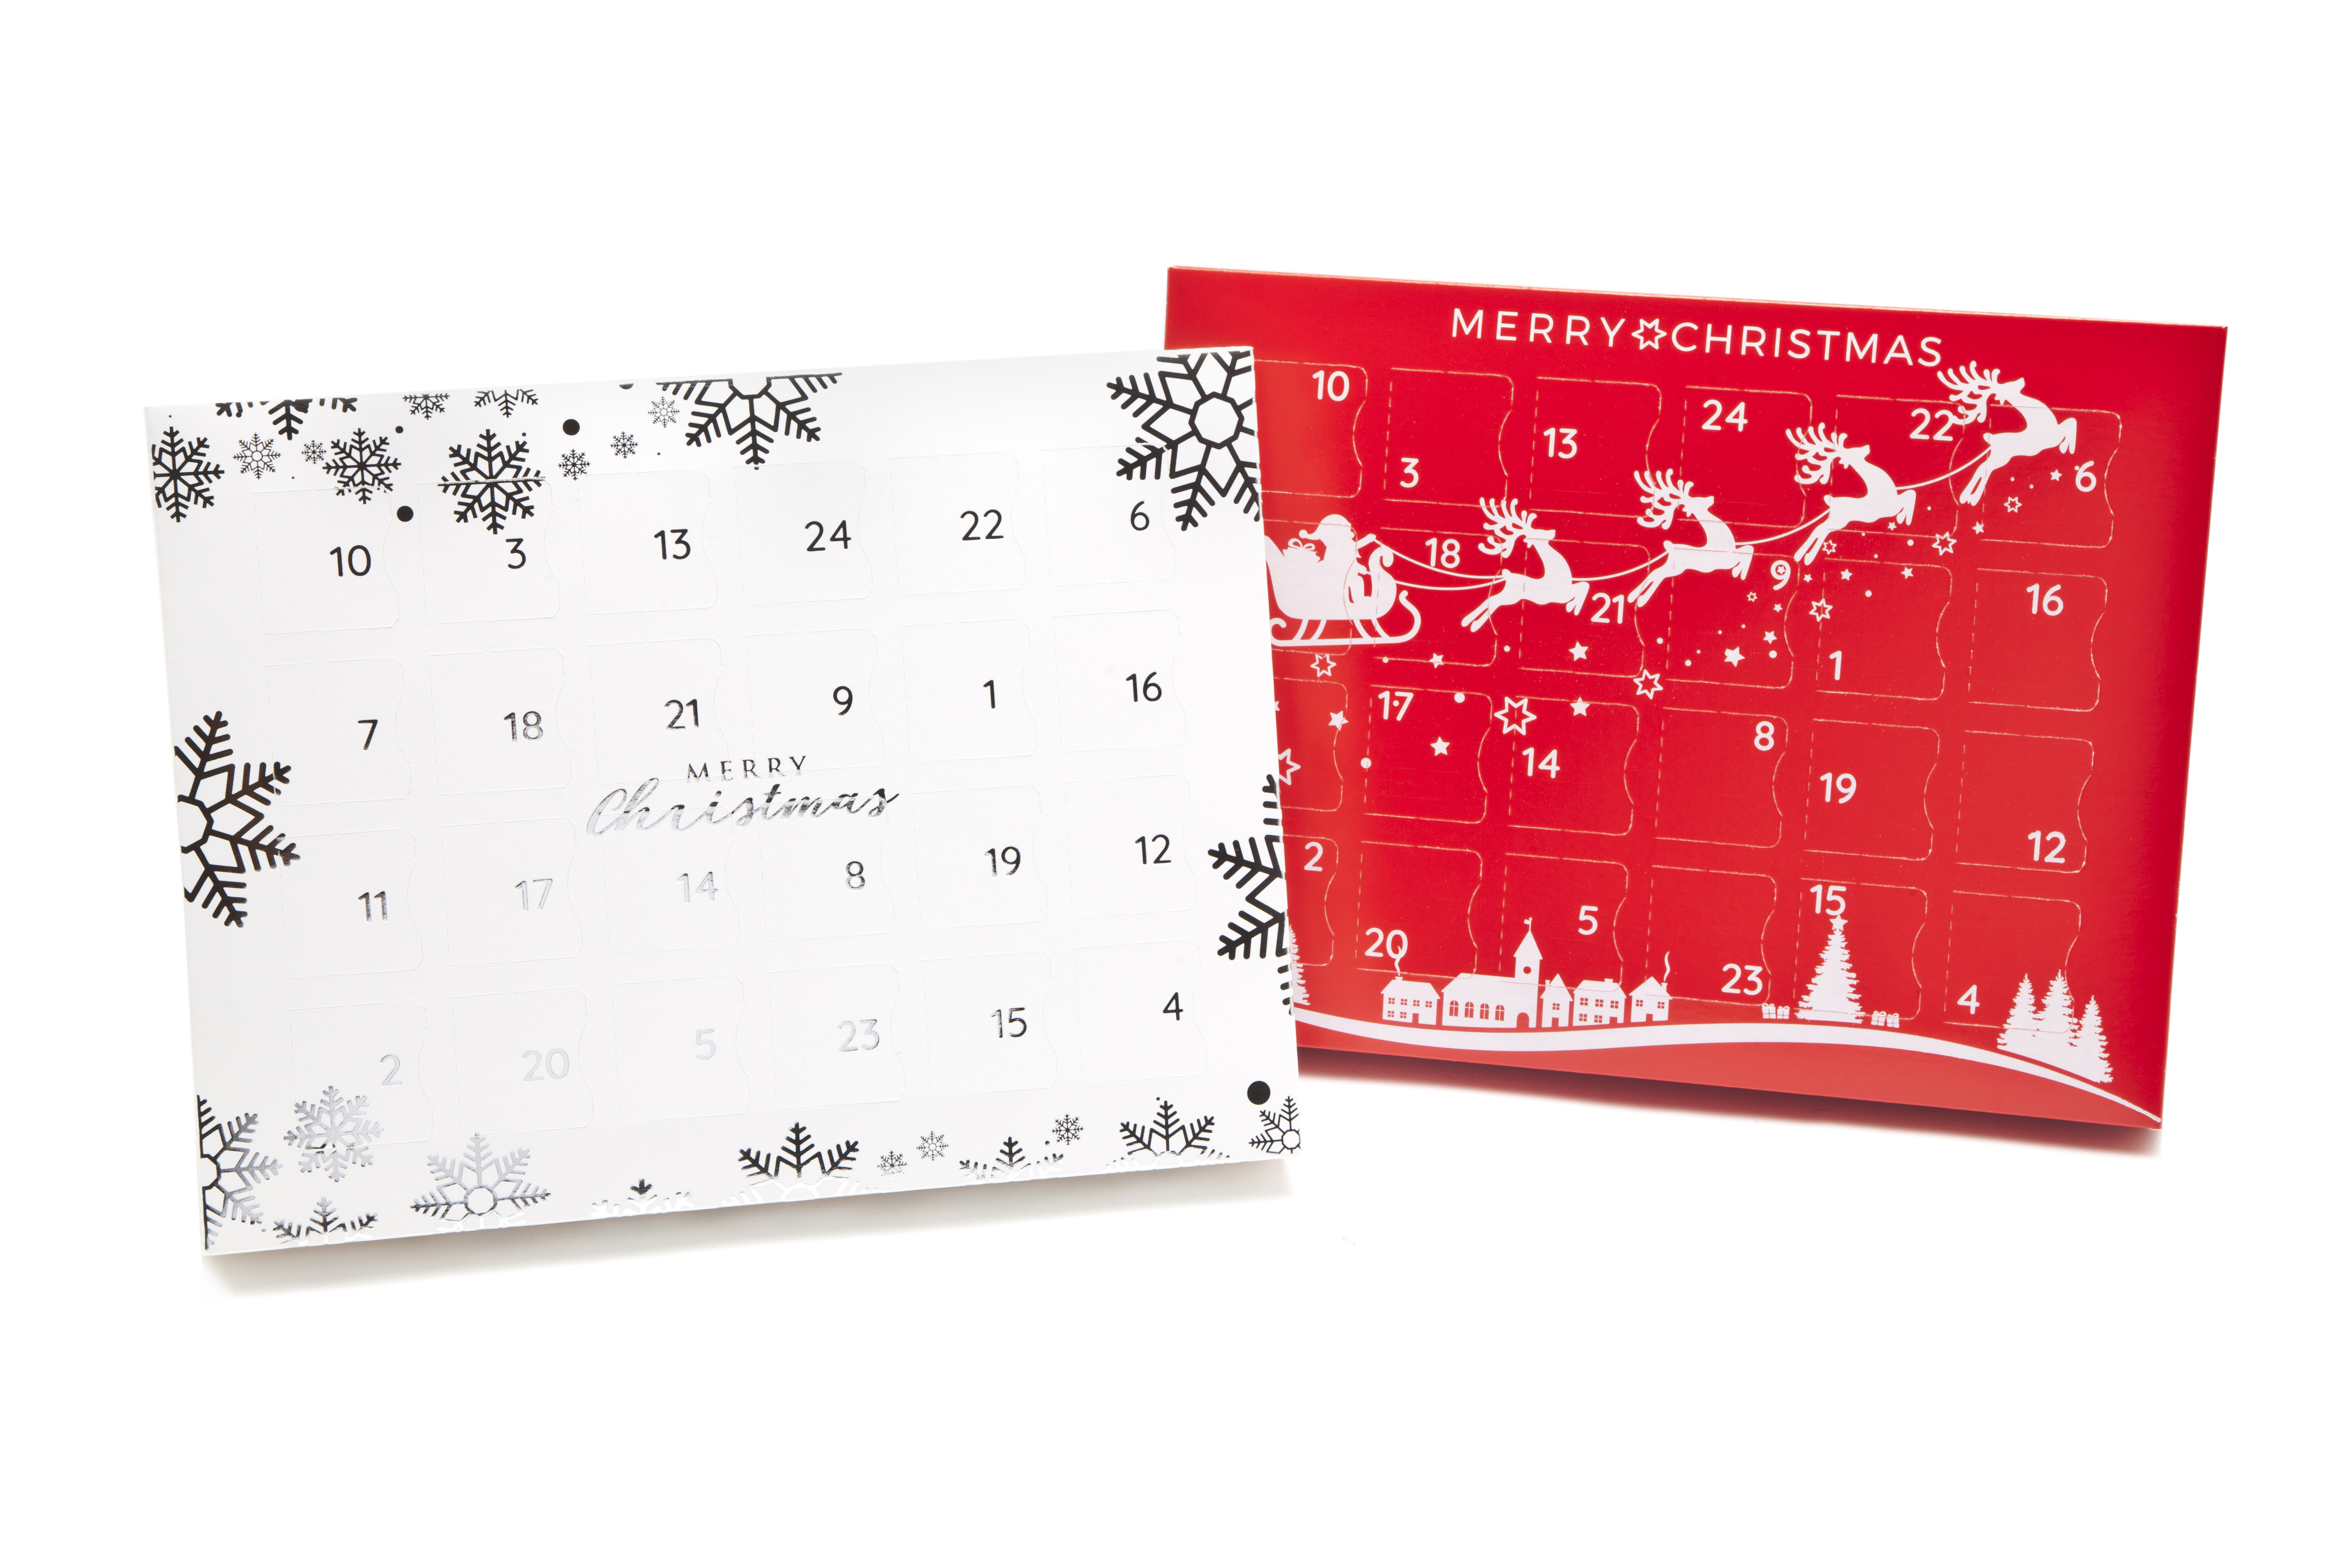 Two new designs make up the new Premium Light advent calendar range